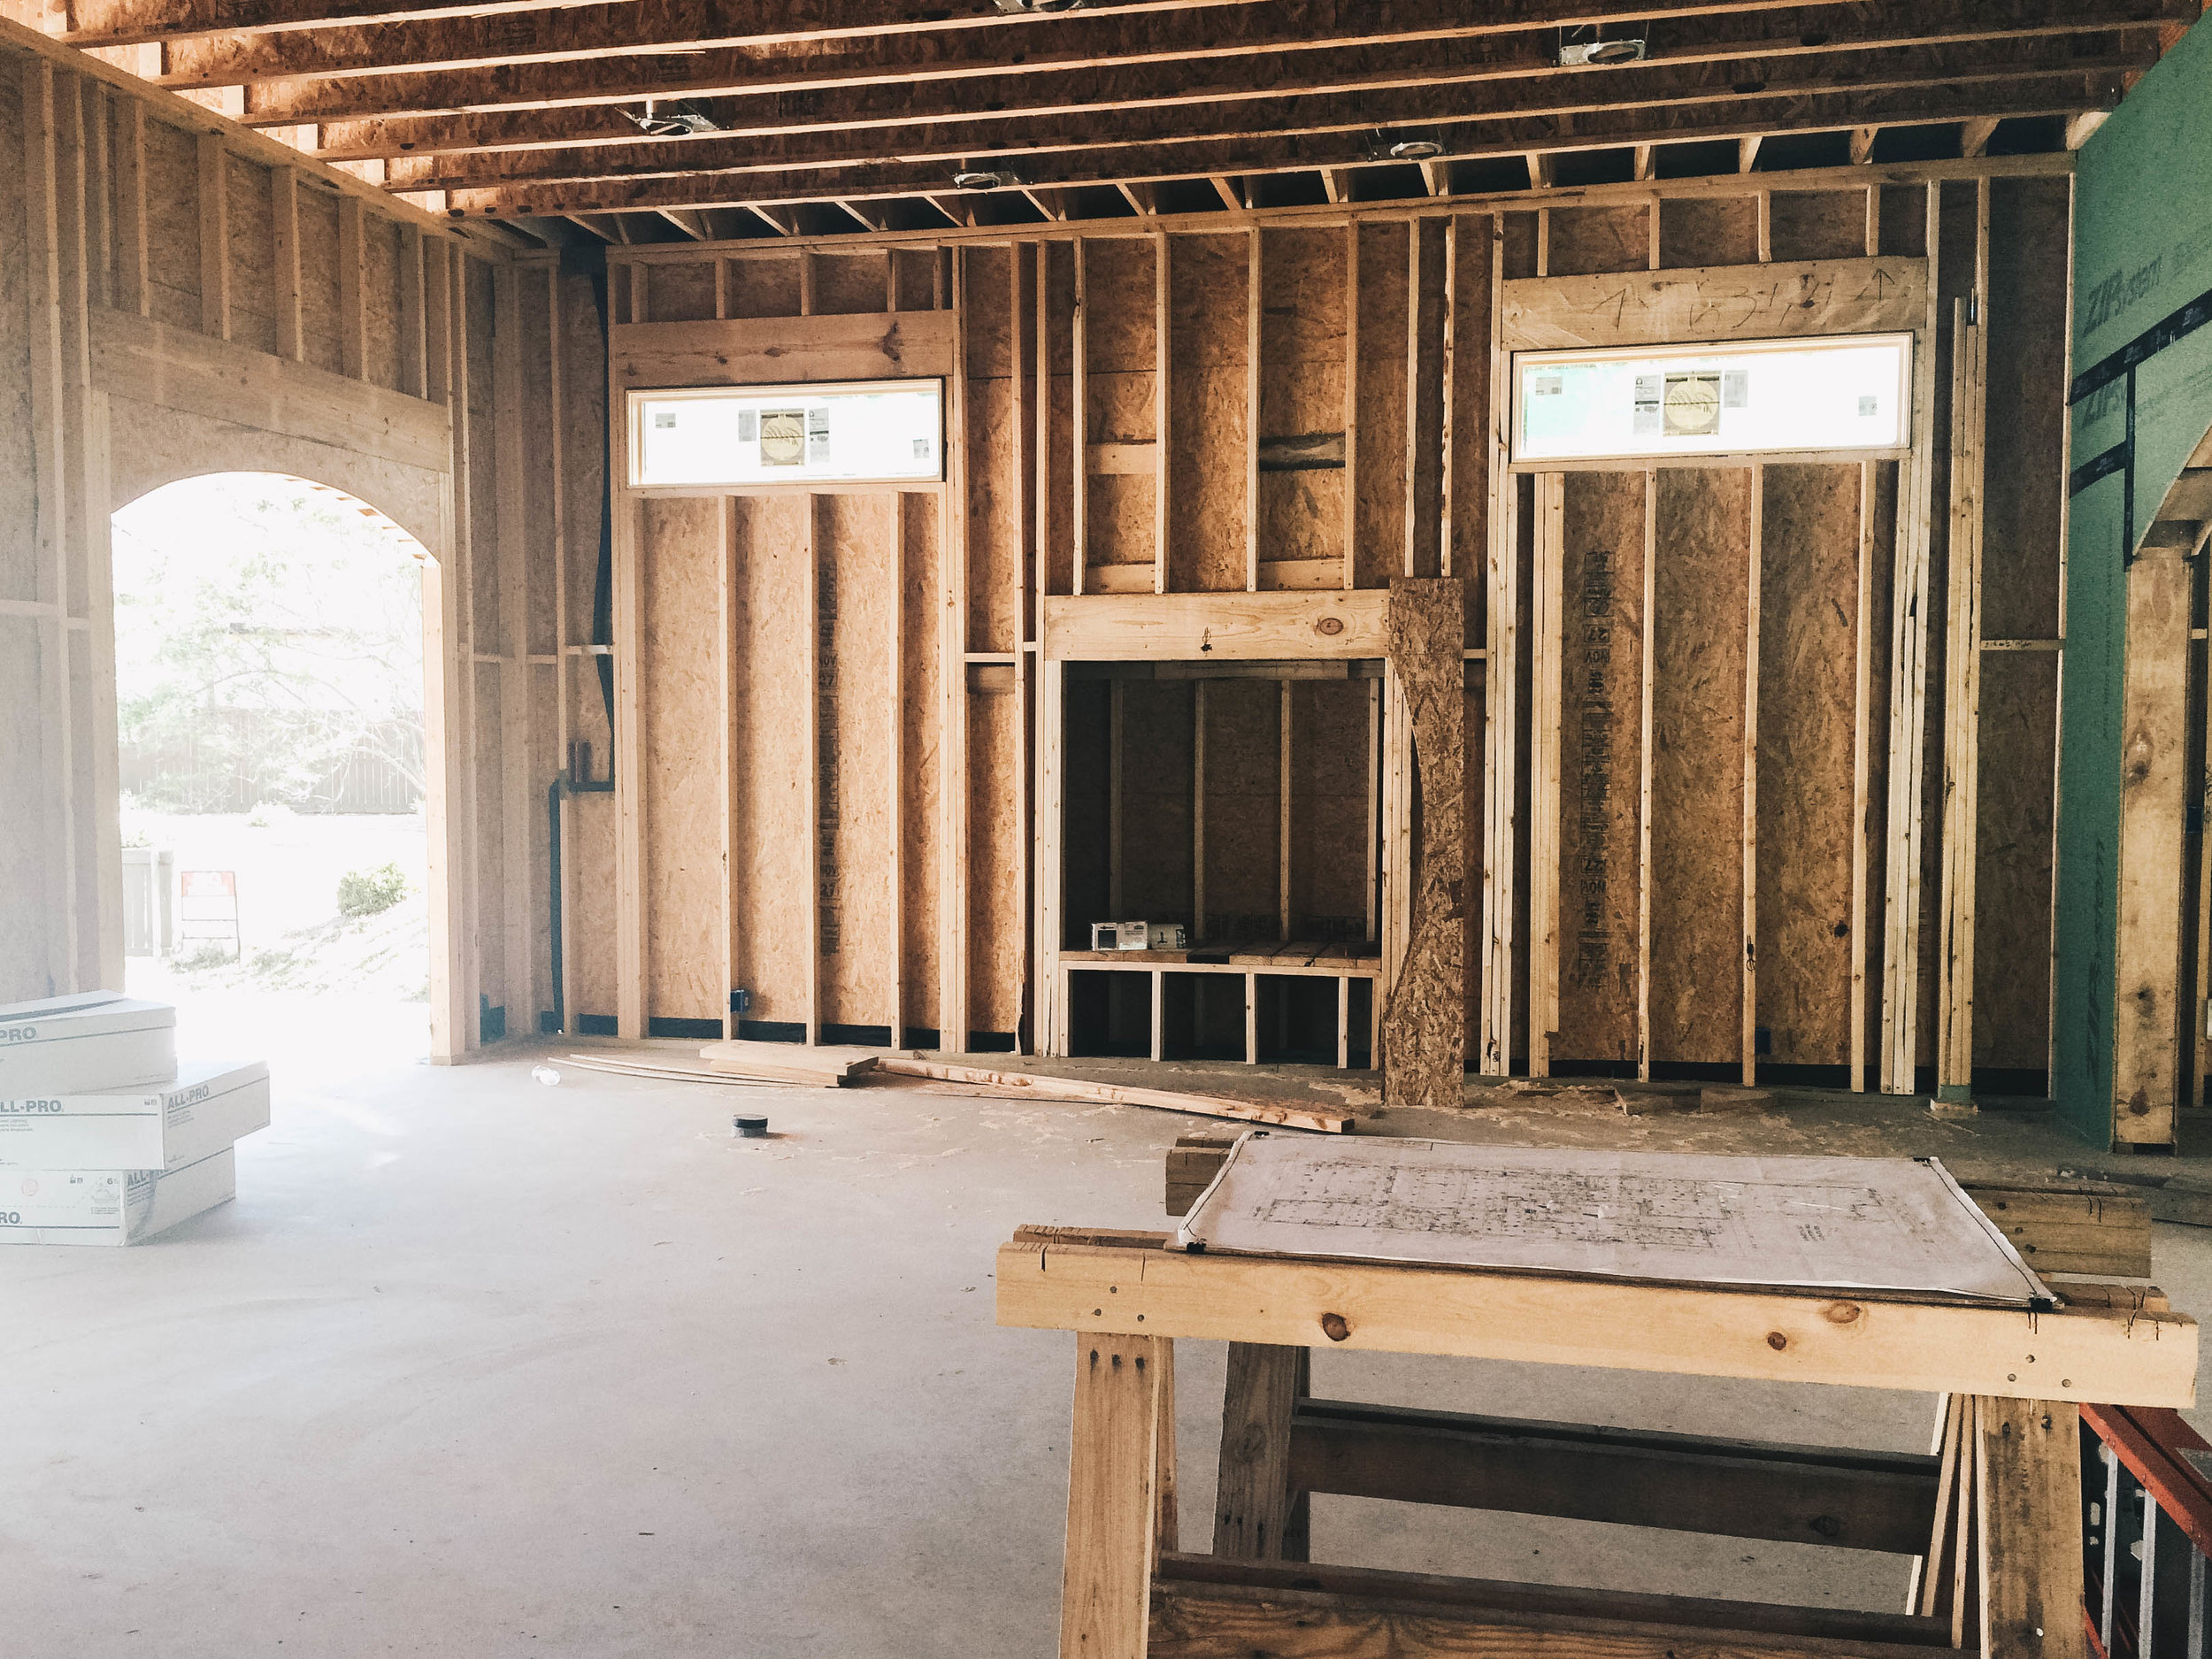 New Construction - Building a new home can be exciting and overwhelming at the same time. Our team is here to help you with start to finish interior detailing, from finishes to furniture selections. We also have access to an array of design resources that will make your new construction experience easier!